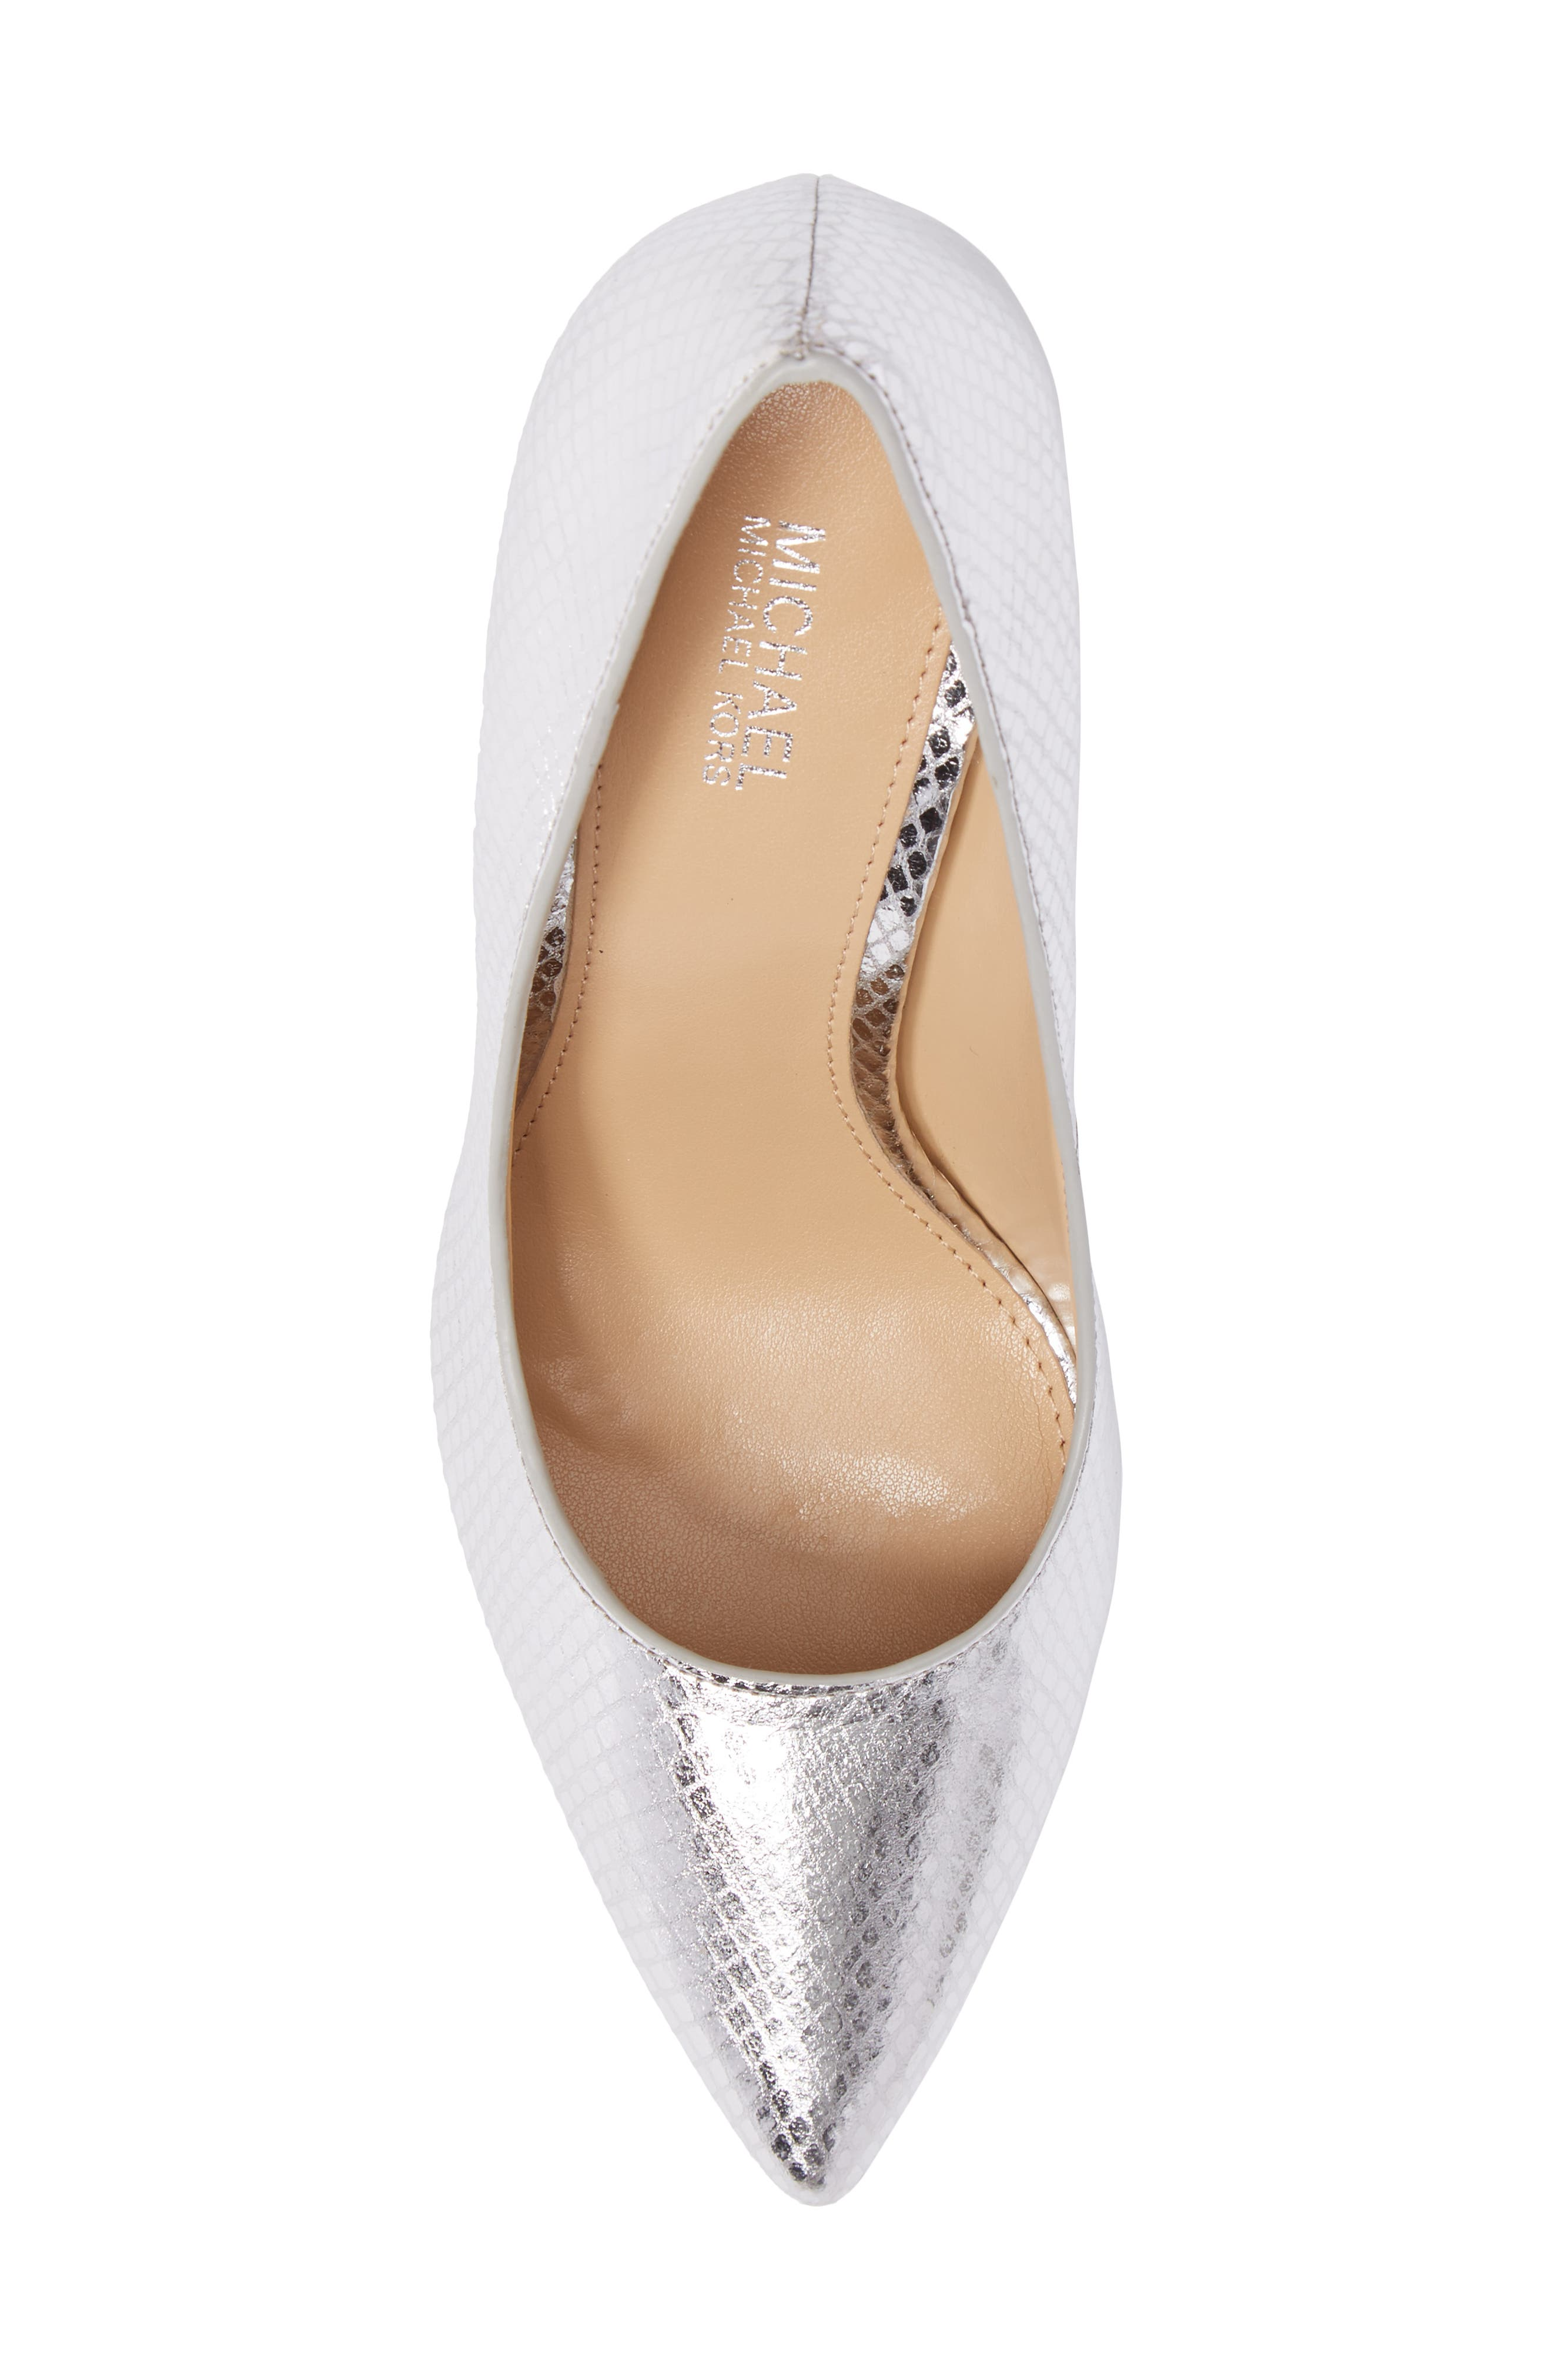 Claire Pointy Toe Pump,                             Alternate thumbnail 5, color,                             040